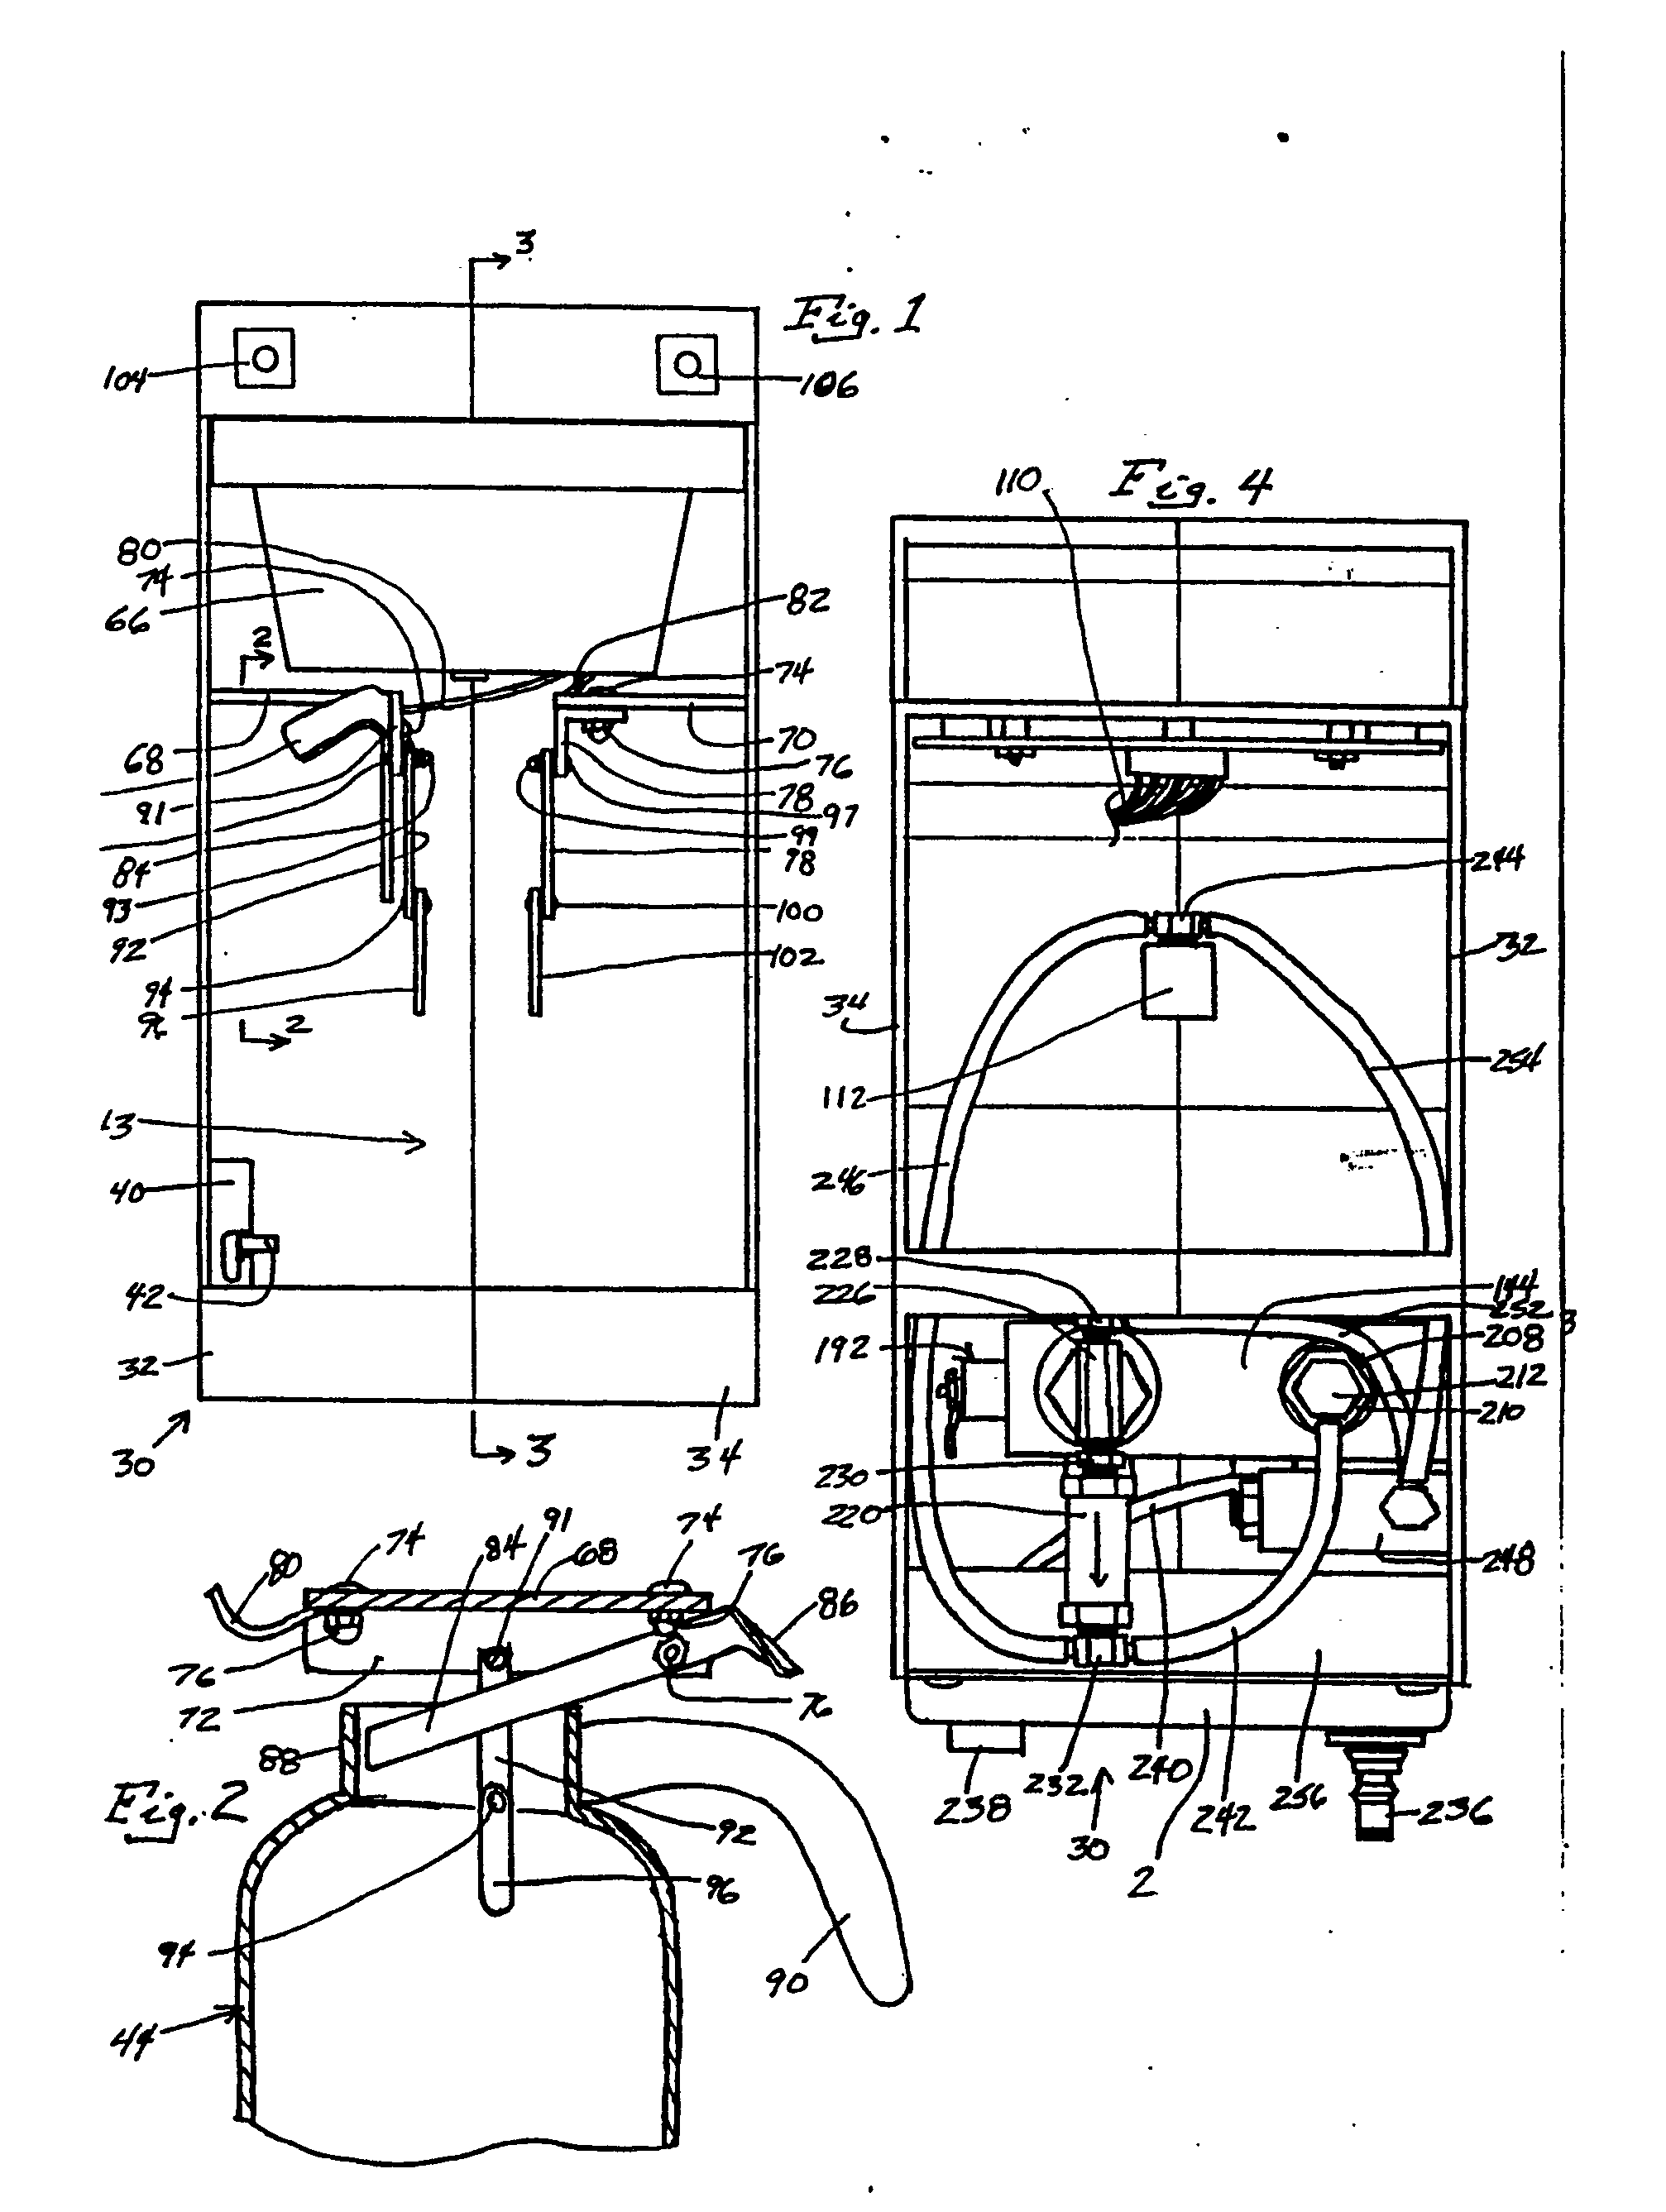 patent ep0387515a1 coffee maker for use in aircraft google patents patent drawing